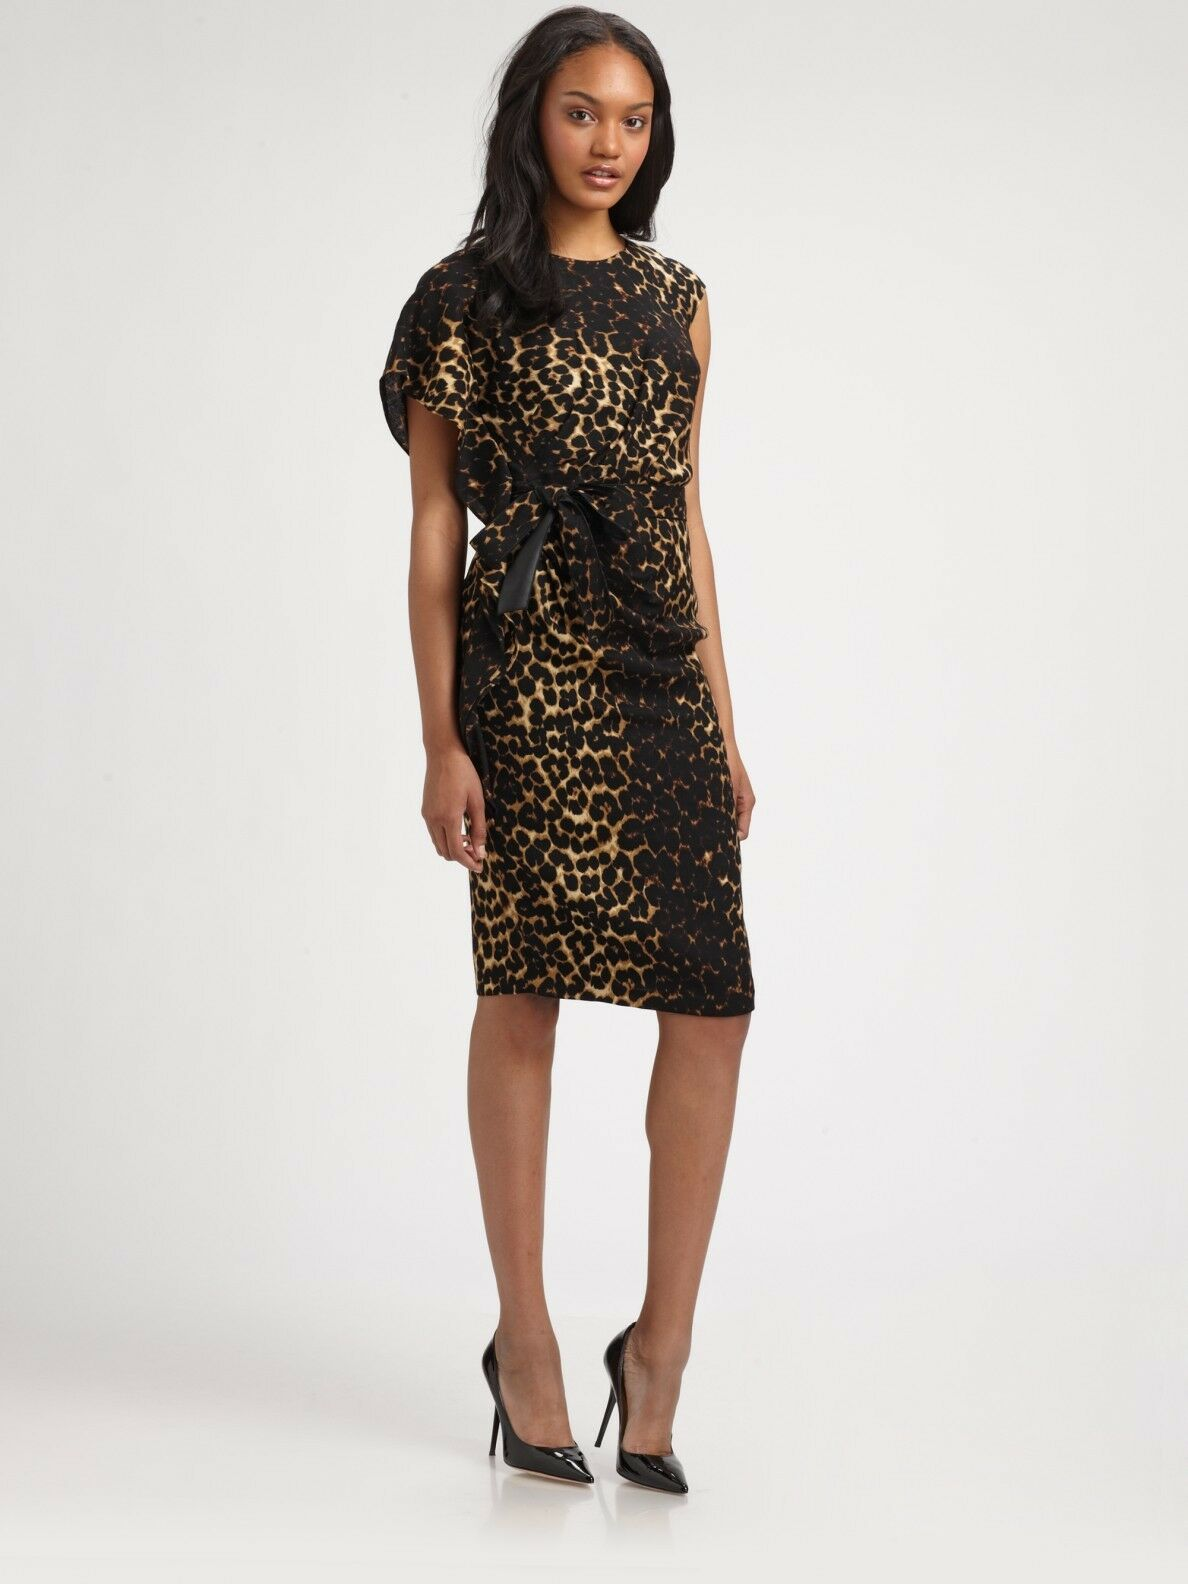 NWT Lafayette 148 Talulah in Leopard Print Wool Belted Sheath Dress 6